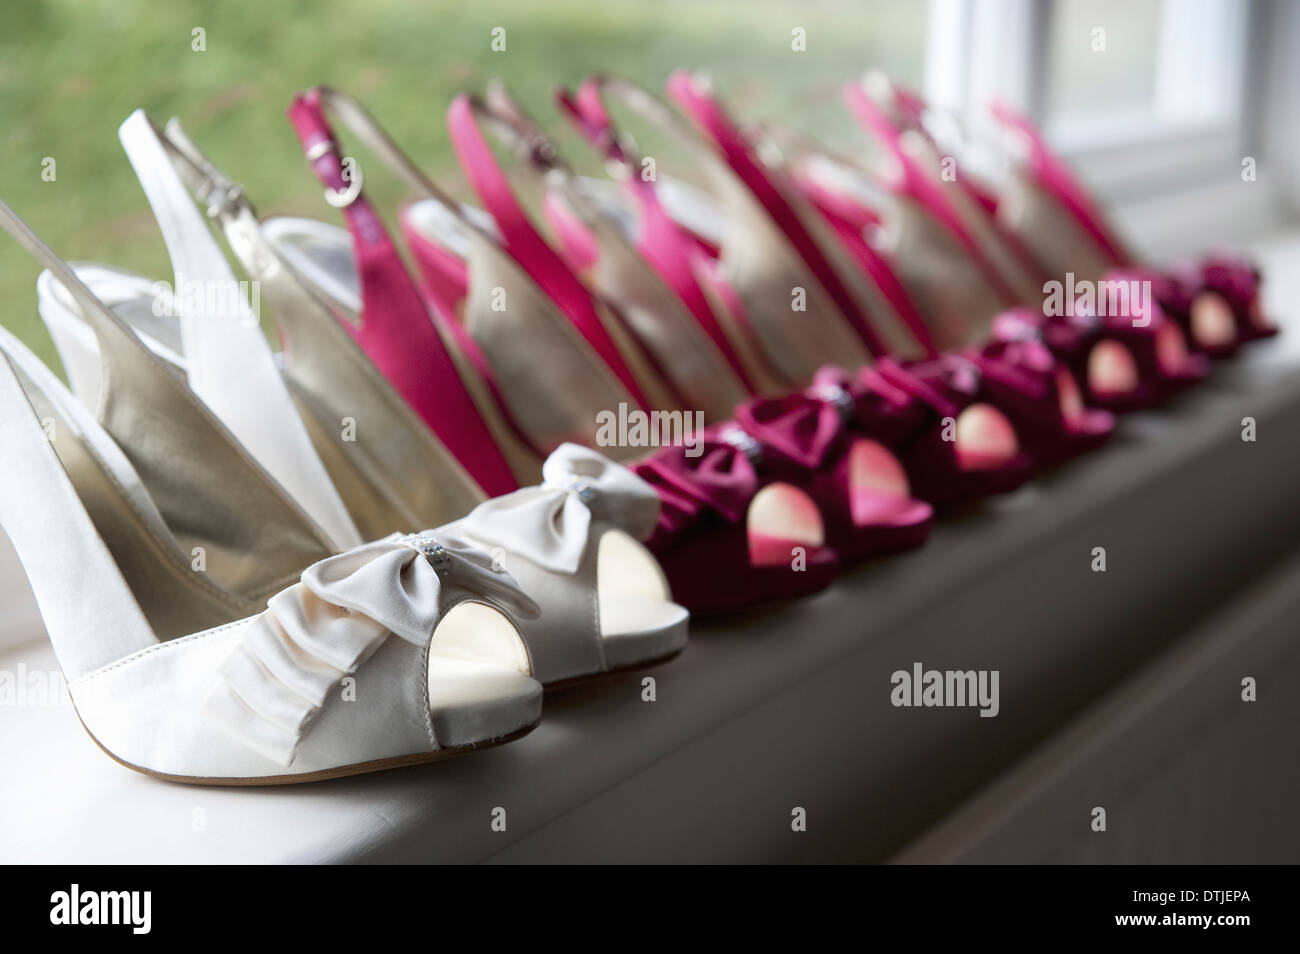 A row of high heeled shoes Pairs of peep toe slingbacks in white and pink  Special occasion  England - Stock Image